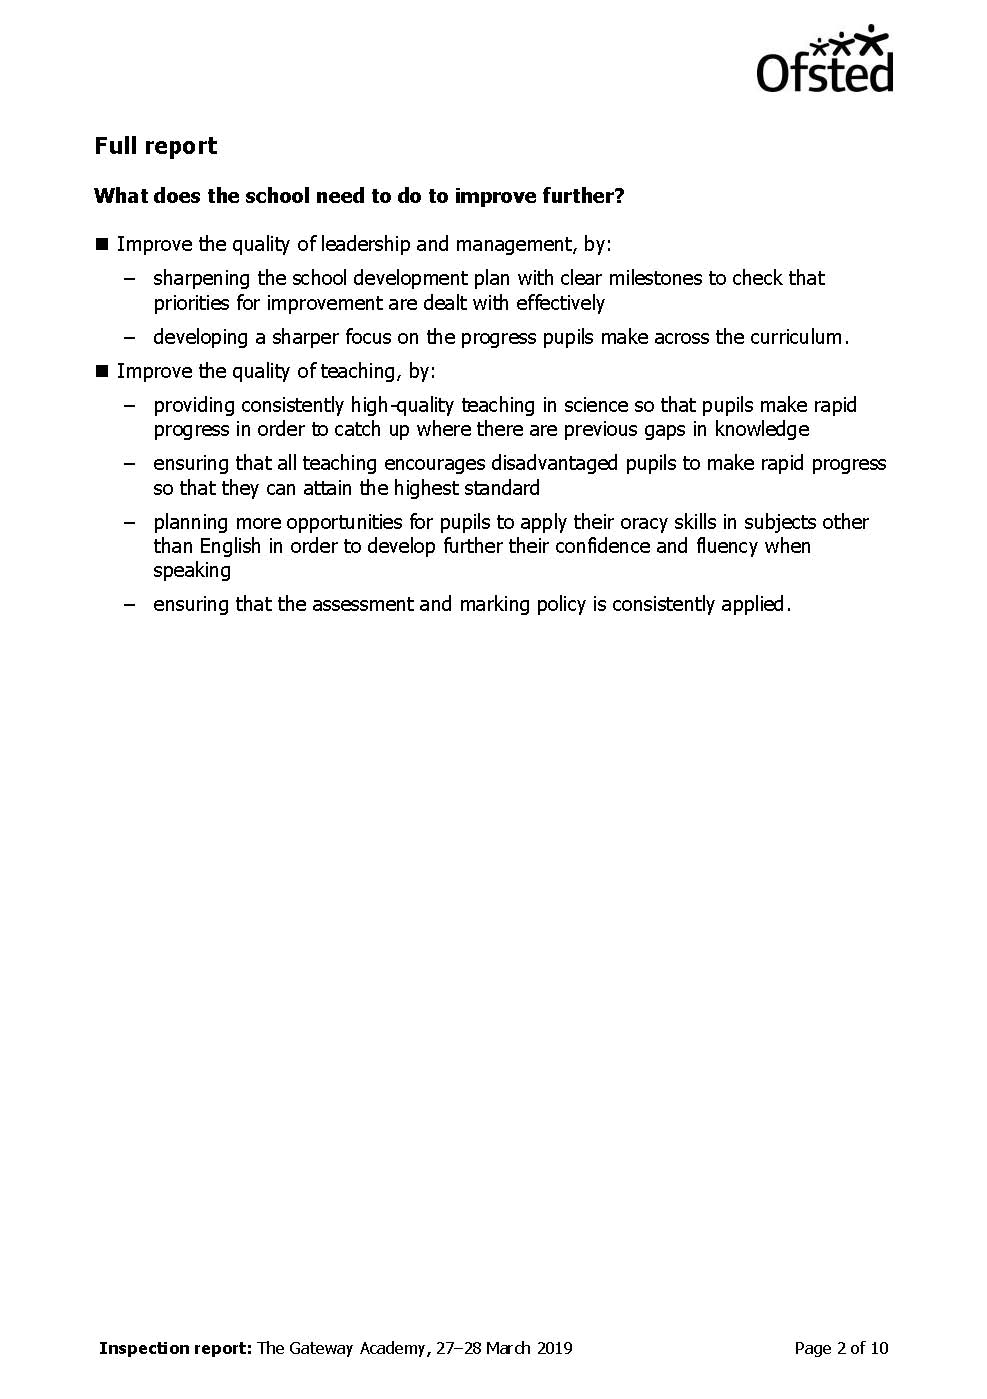 The Gateway Aacdemy Ofsted Report April 2019_Page_02